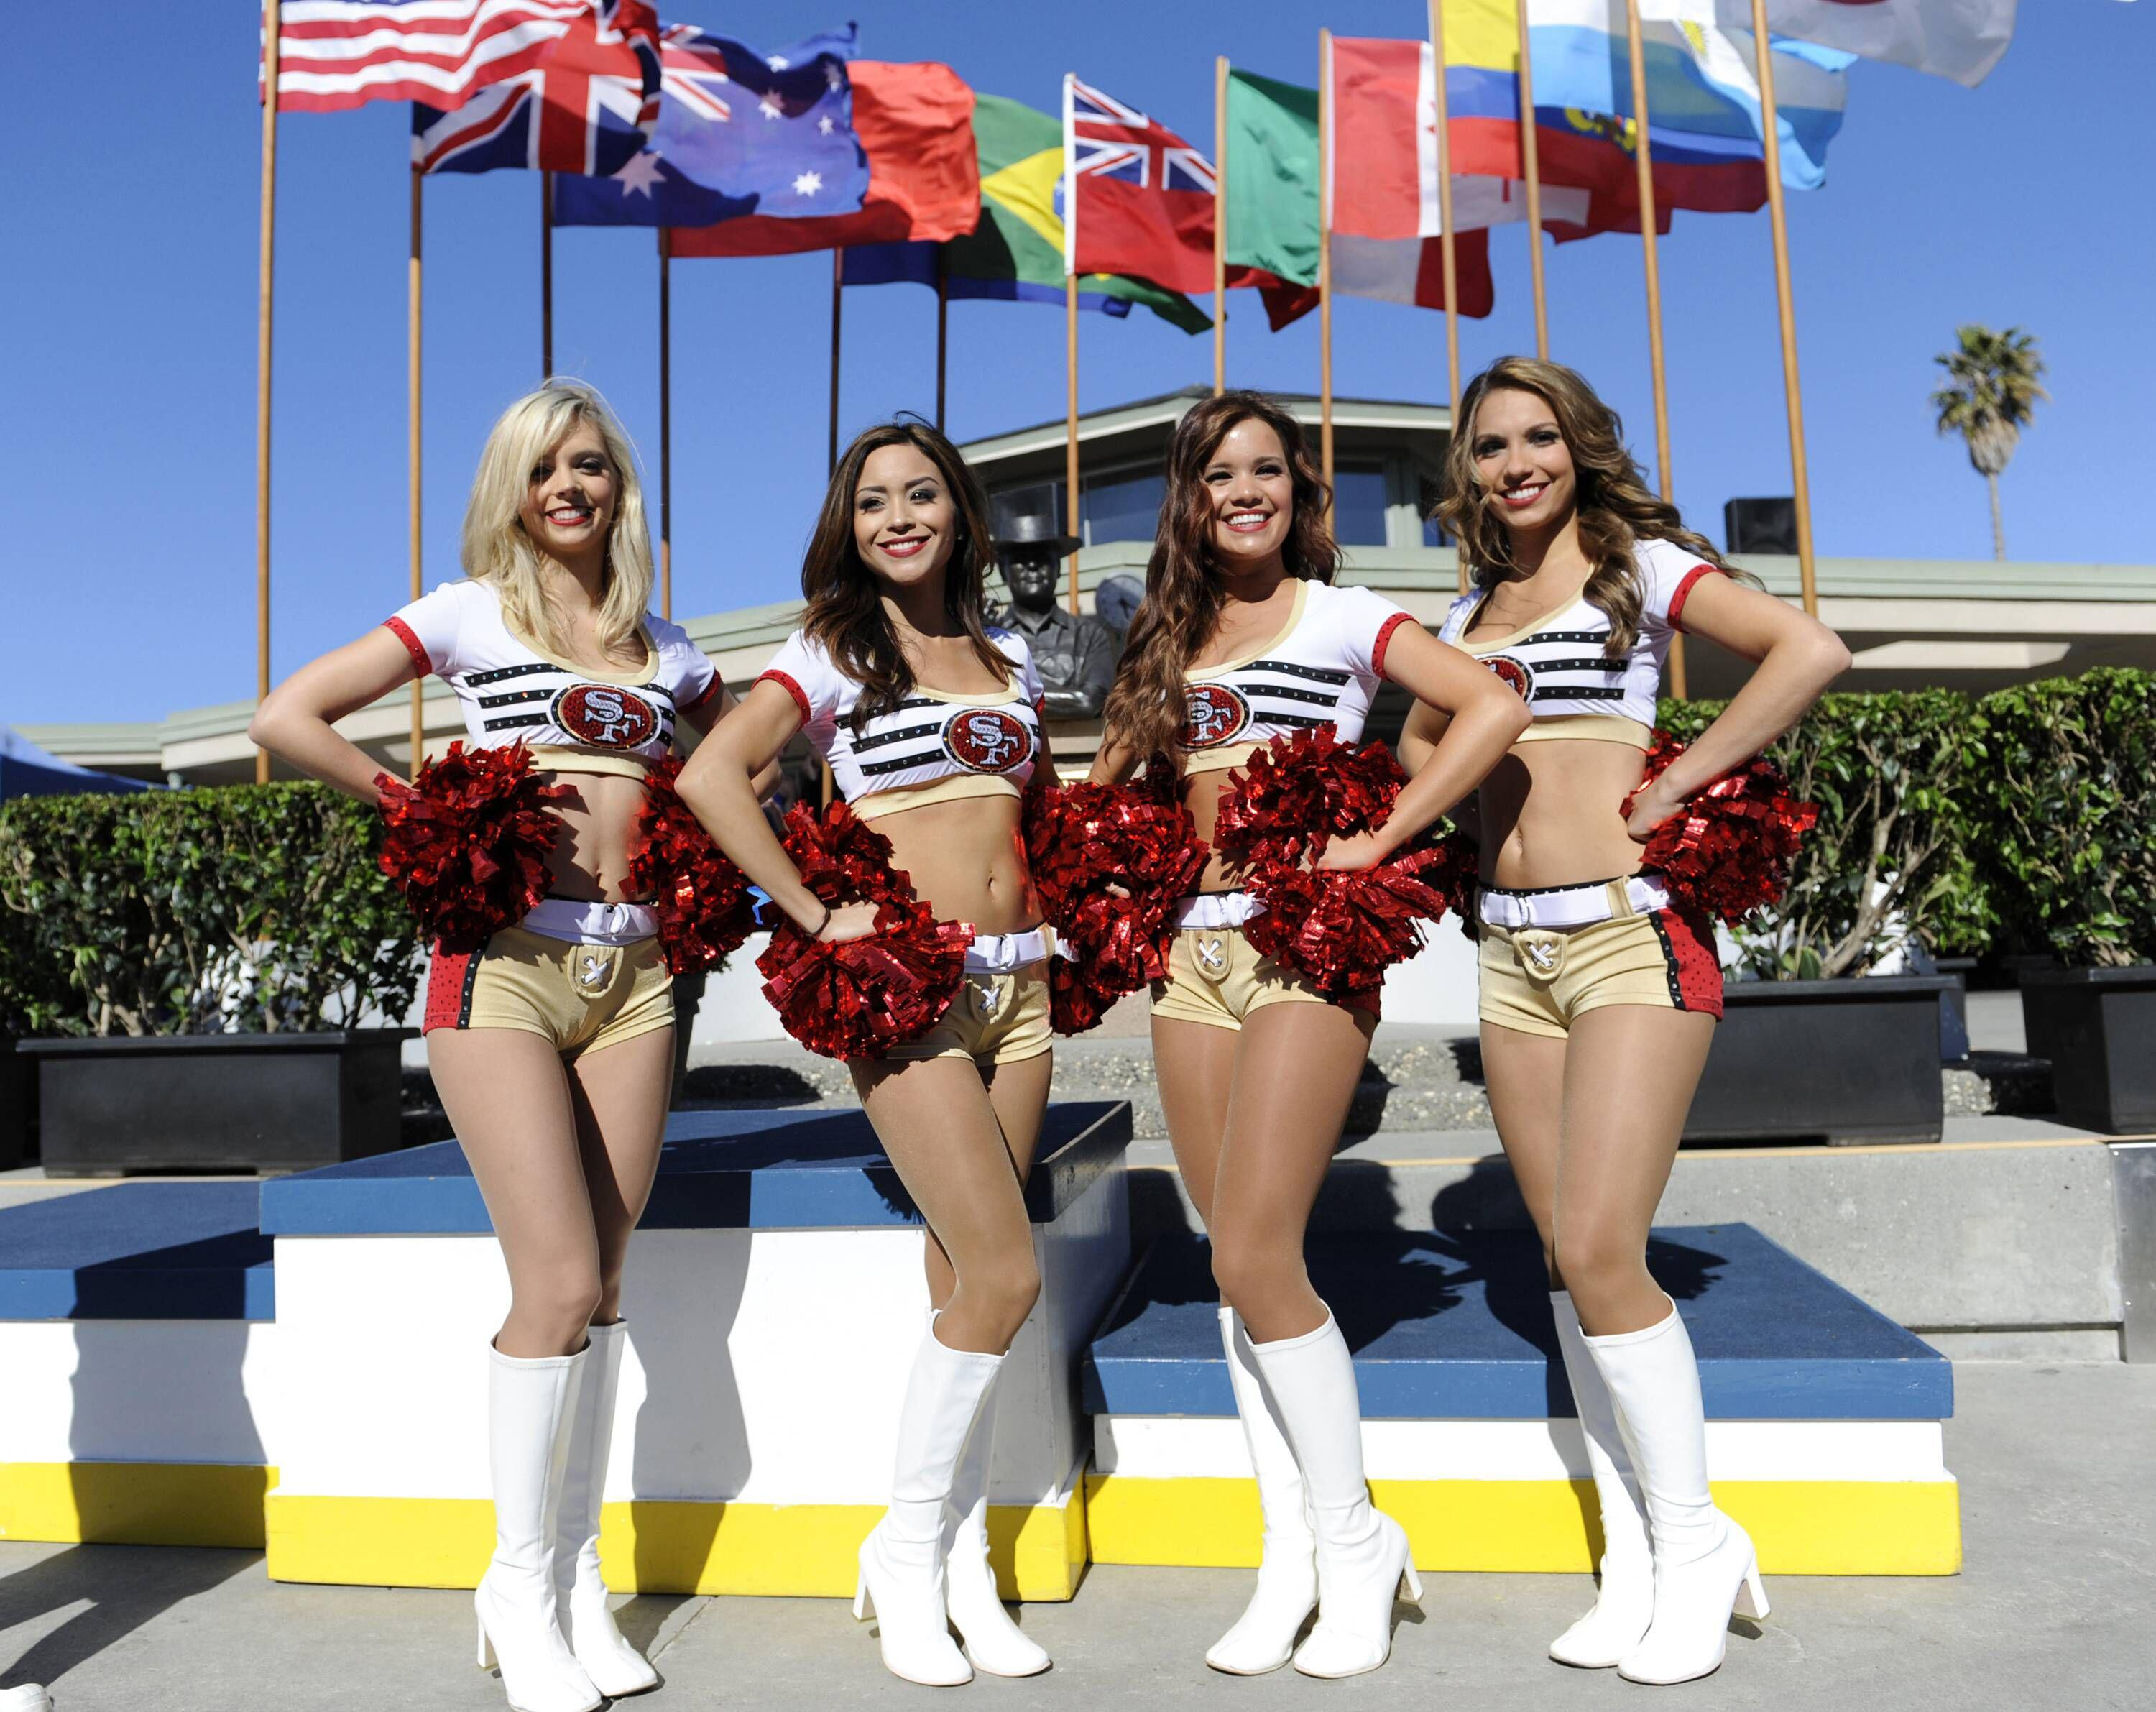 Bild zu San Francisco 49ers, Cheerleader, NFL